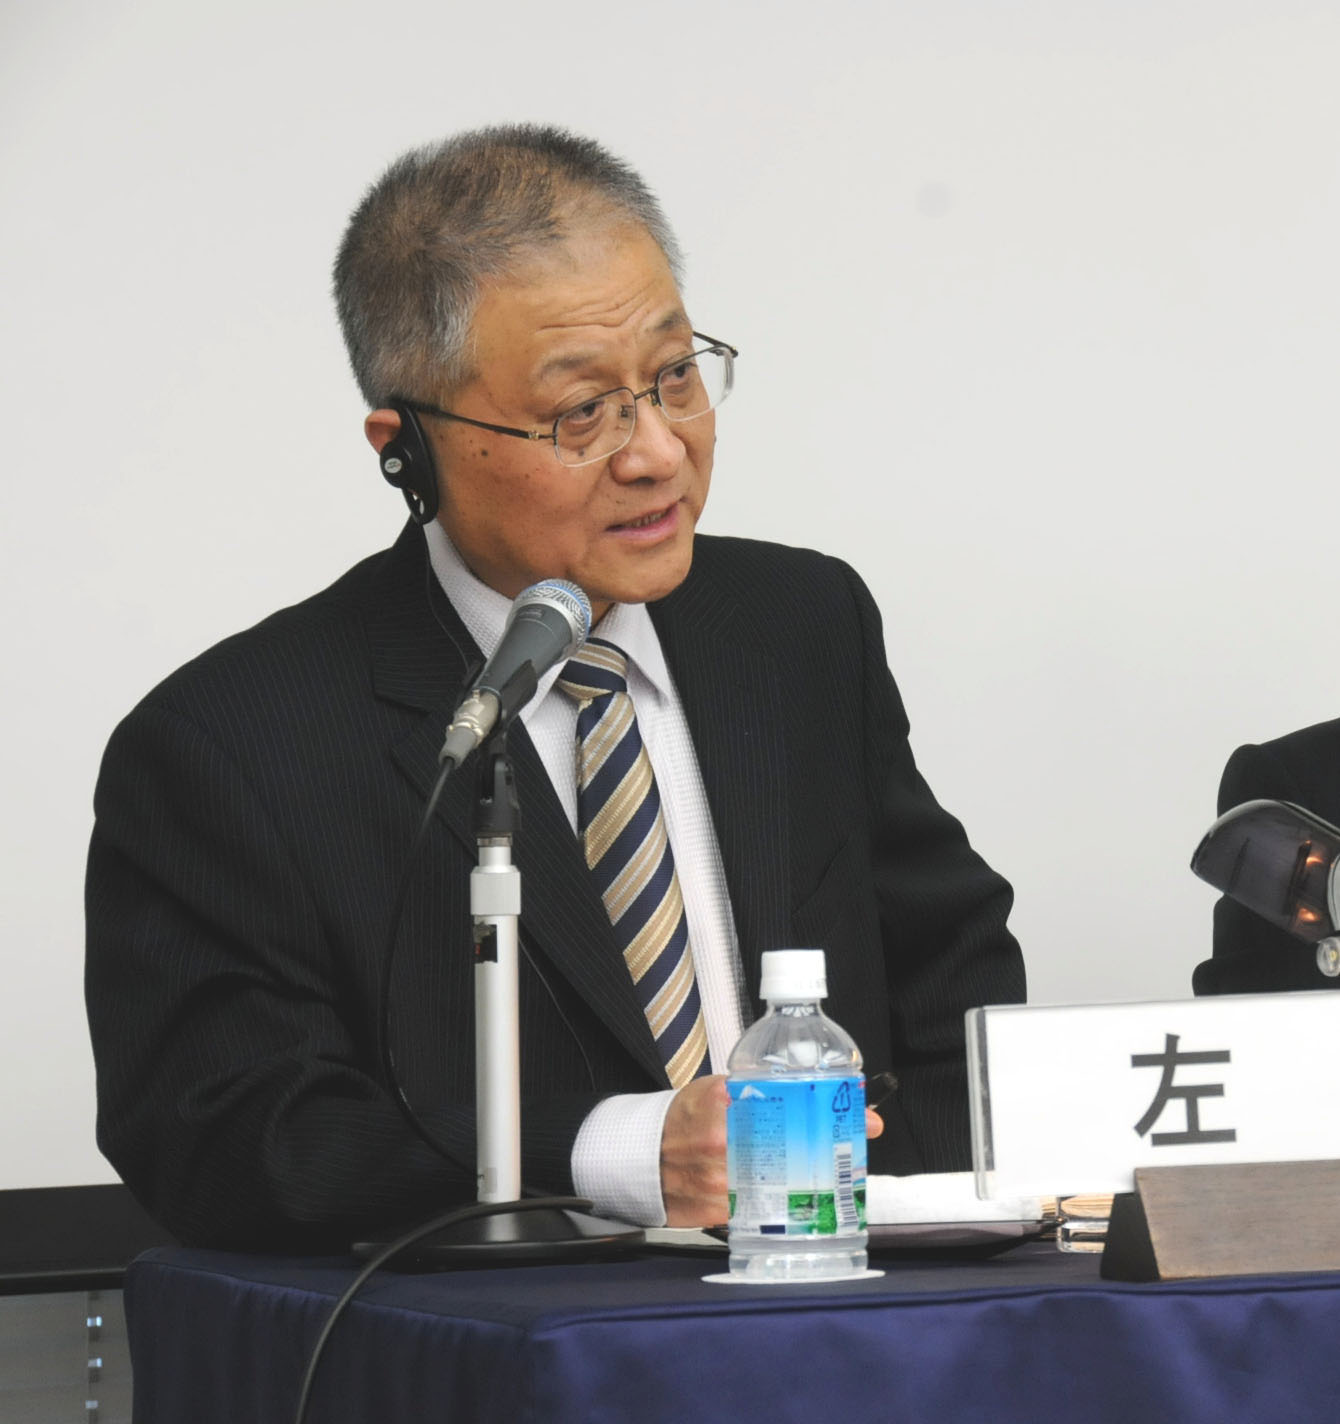 Zuo Xuejin from the Shanghai Academy of Social Sciences discusses China's aging population and its socioeconomic impact during a Feb. 20 seminar in Tokyo. | SATOKO KAWASAKI PHOTOS